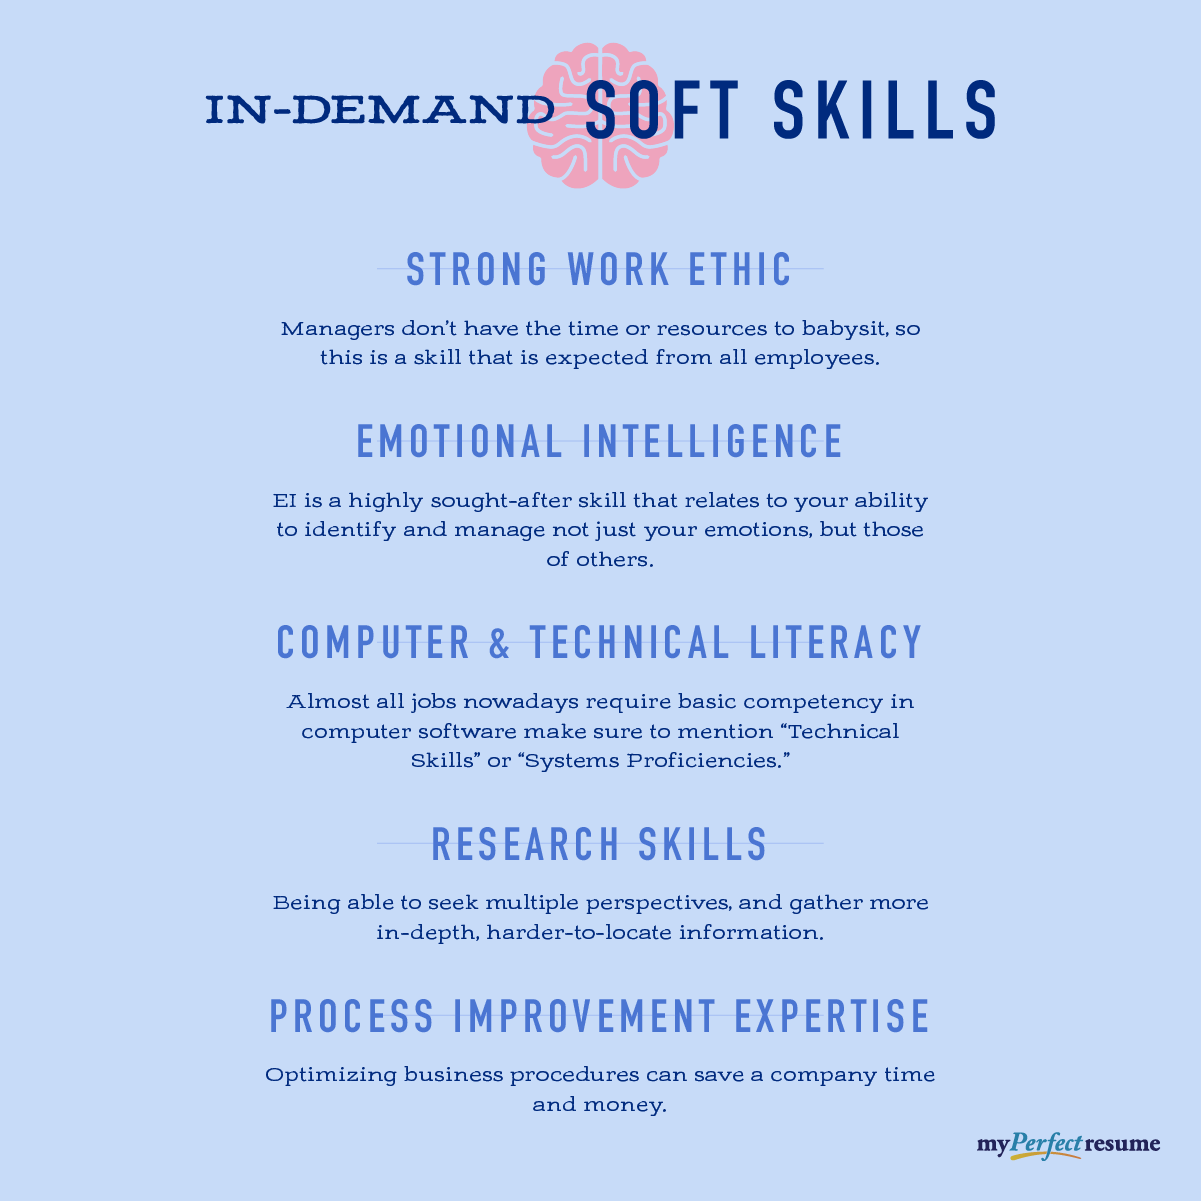 Hard skills vs. Soft skills. Which skills are most